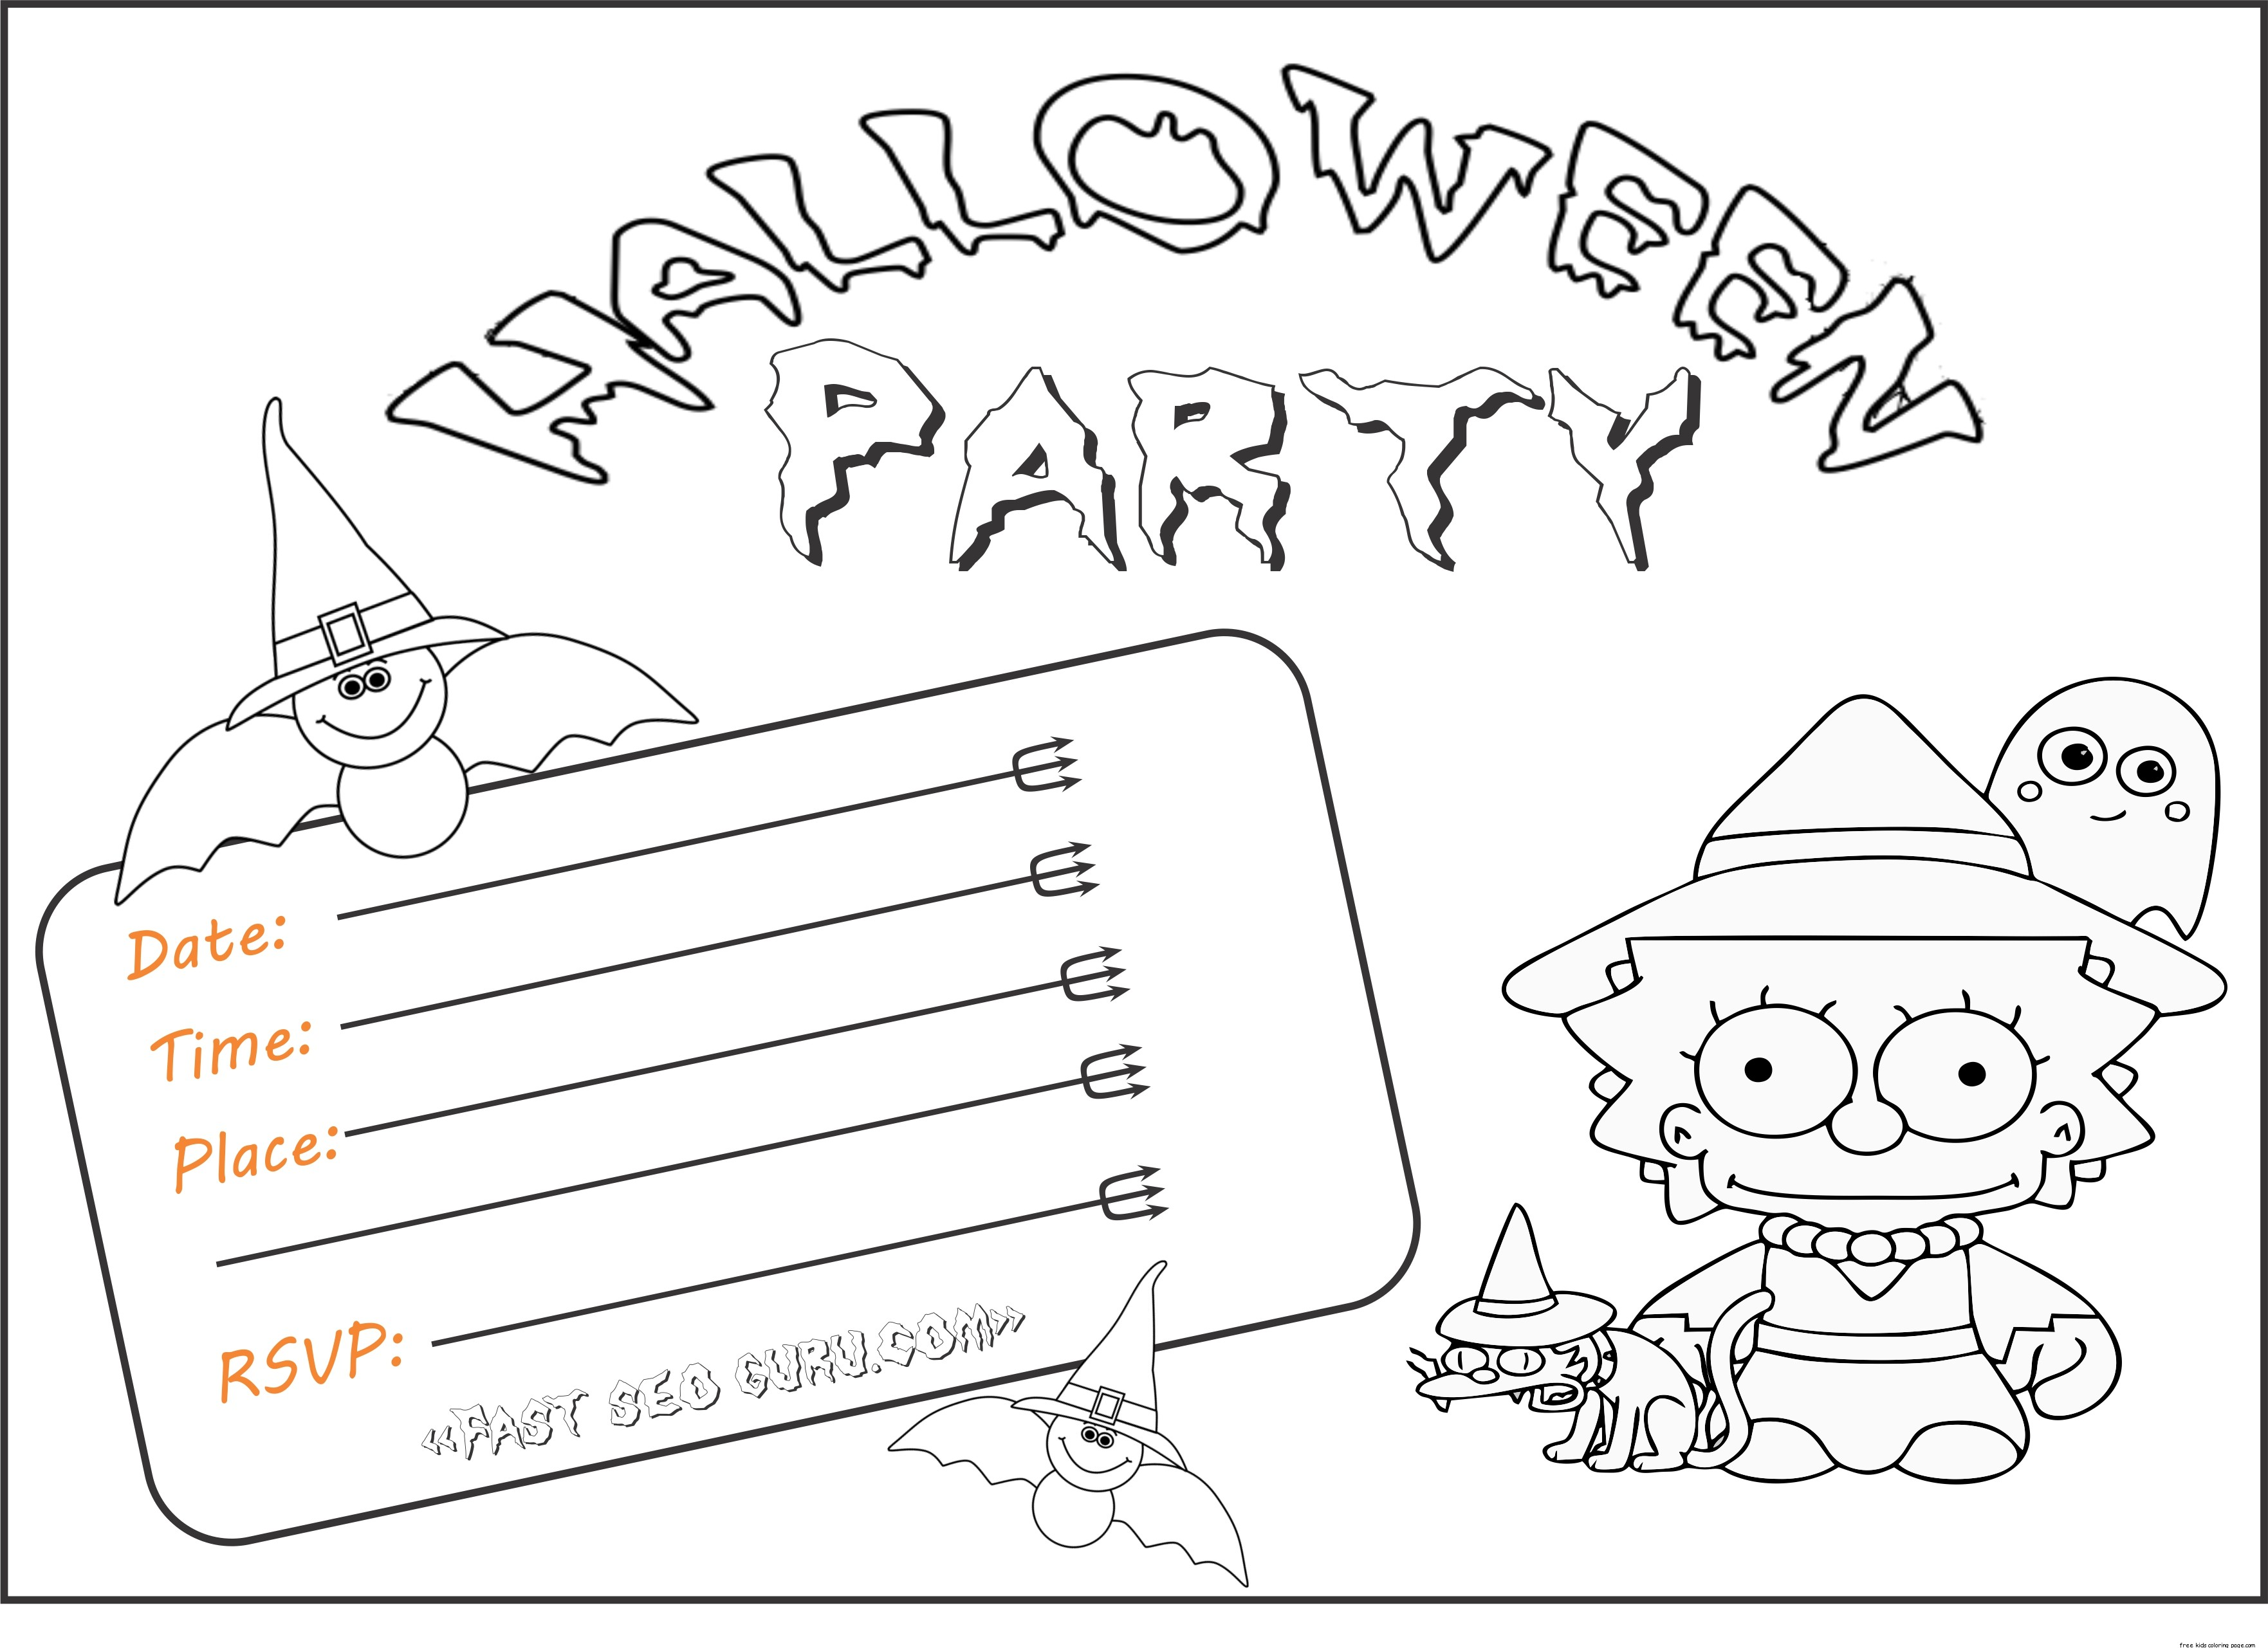 Printable Halloween Party Invitations For KidsFree